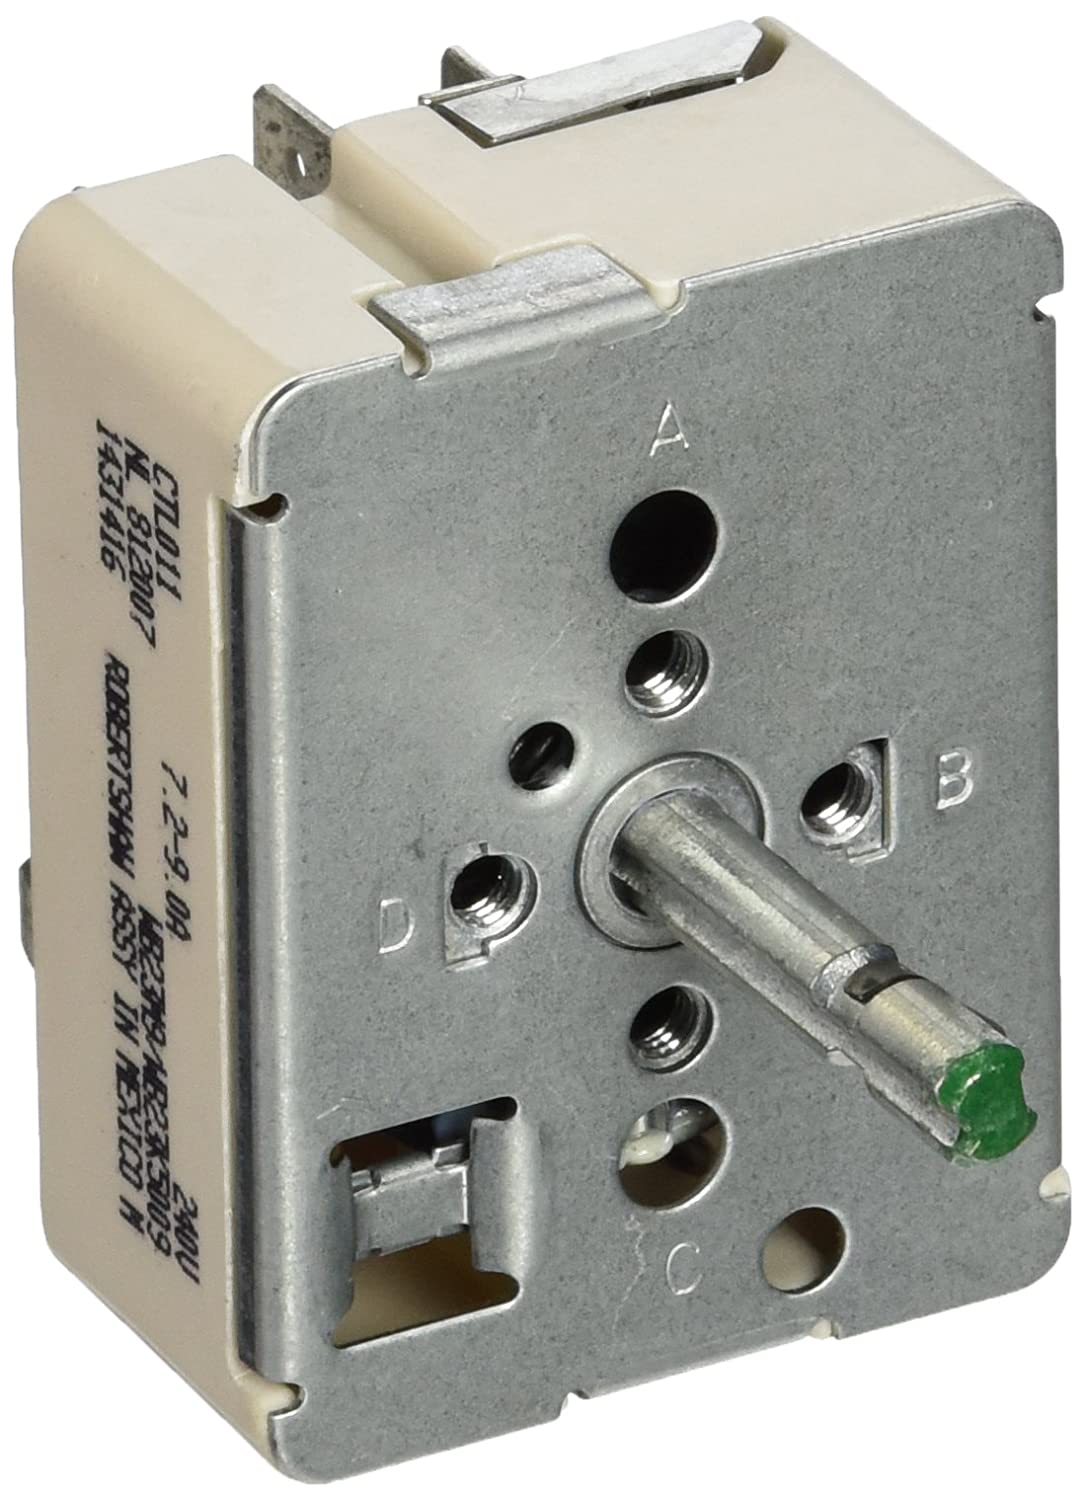 Amazon.com: General Electric WB23M9 Surface Element Switch: Home ...